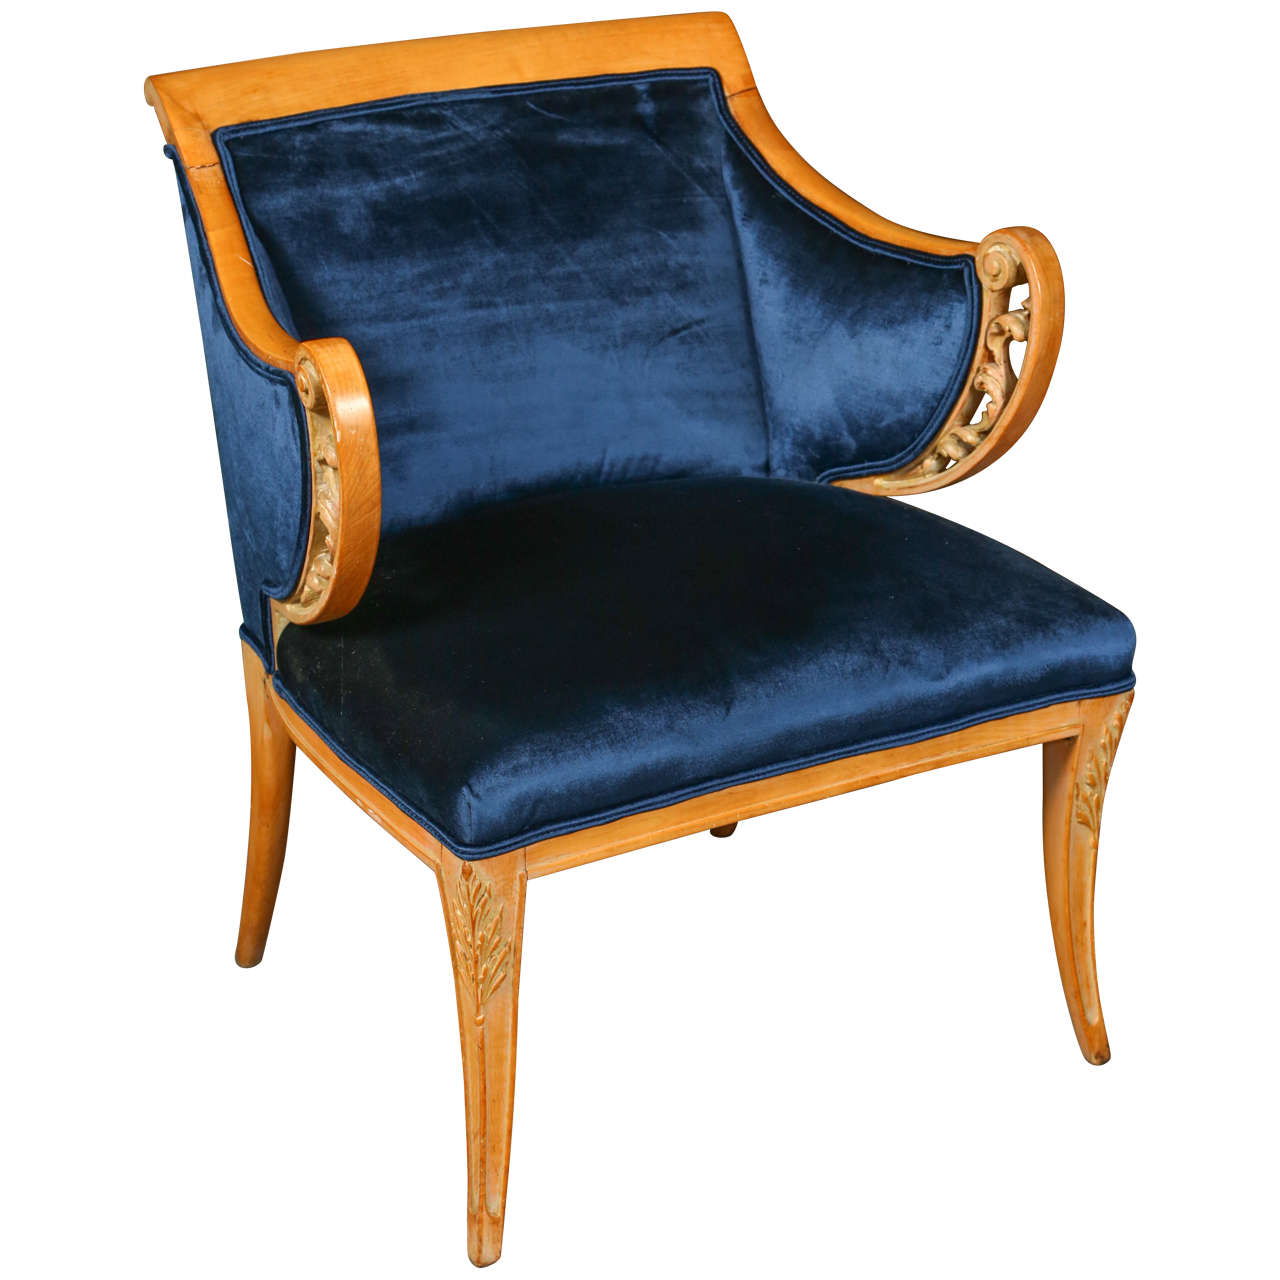 Glamorous Side Chair in the Hollywood Regency Style at 1stdibs